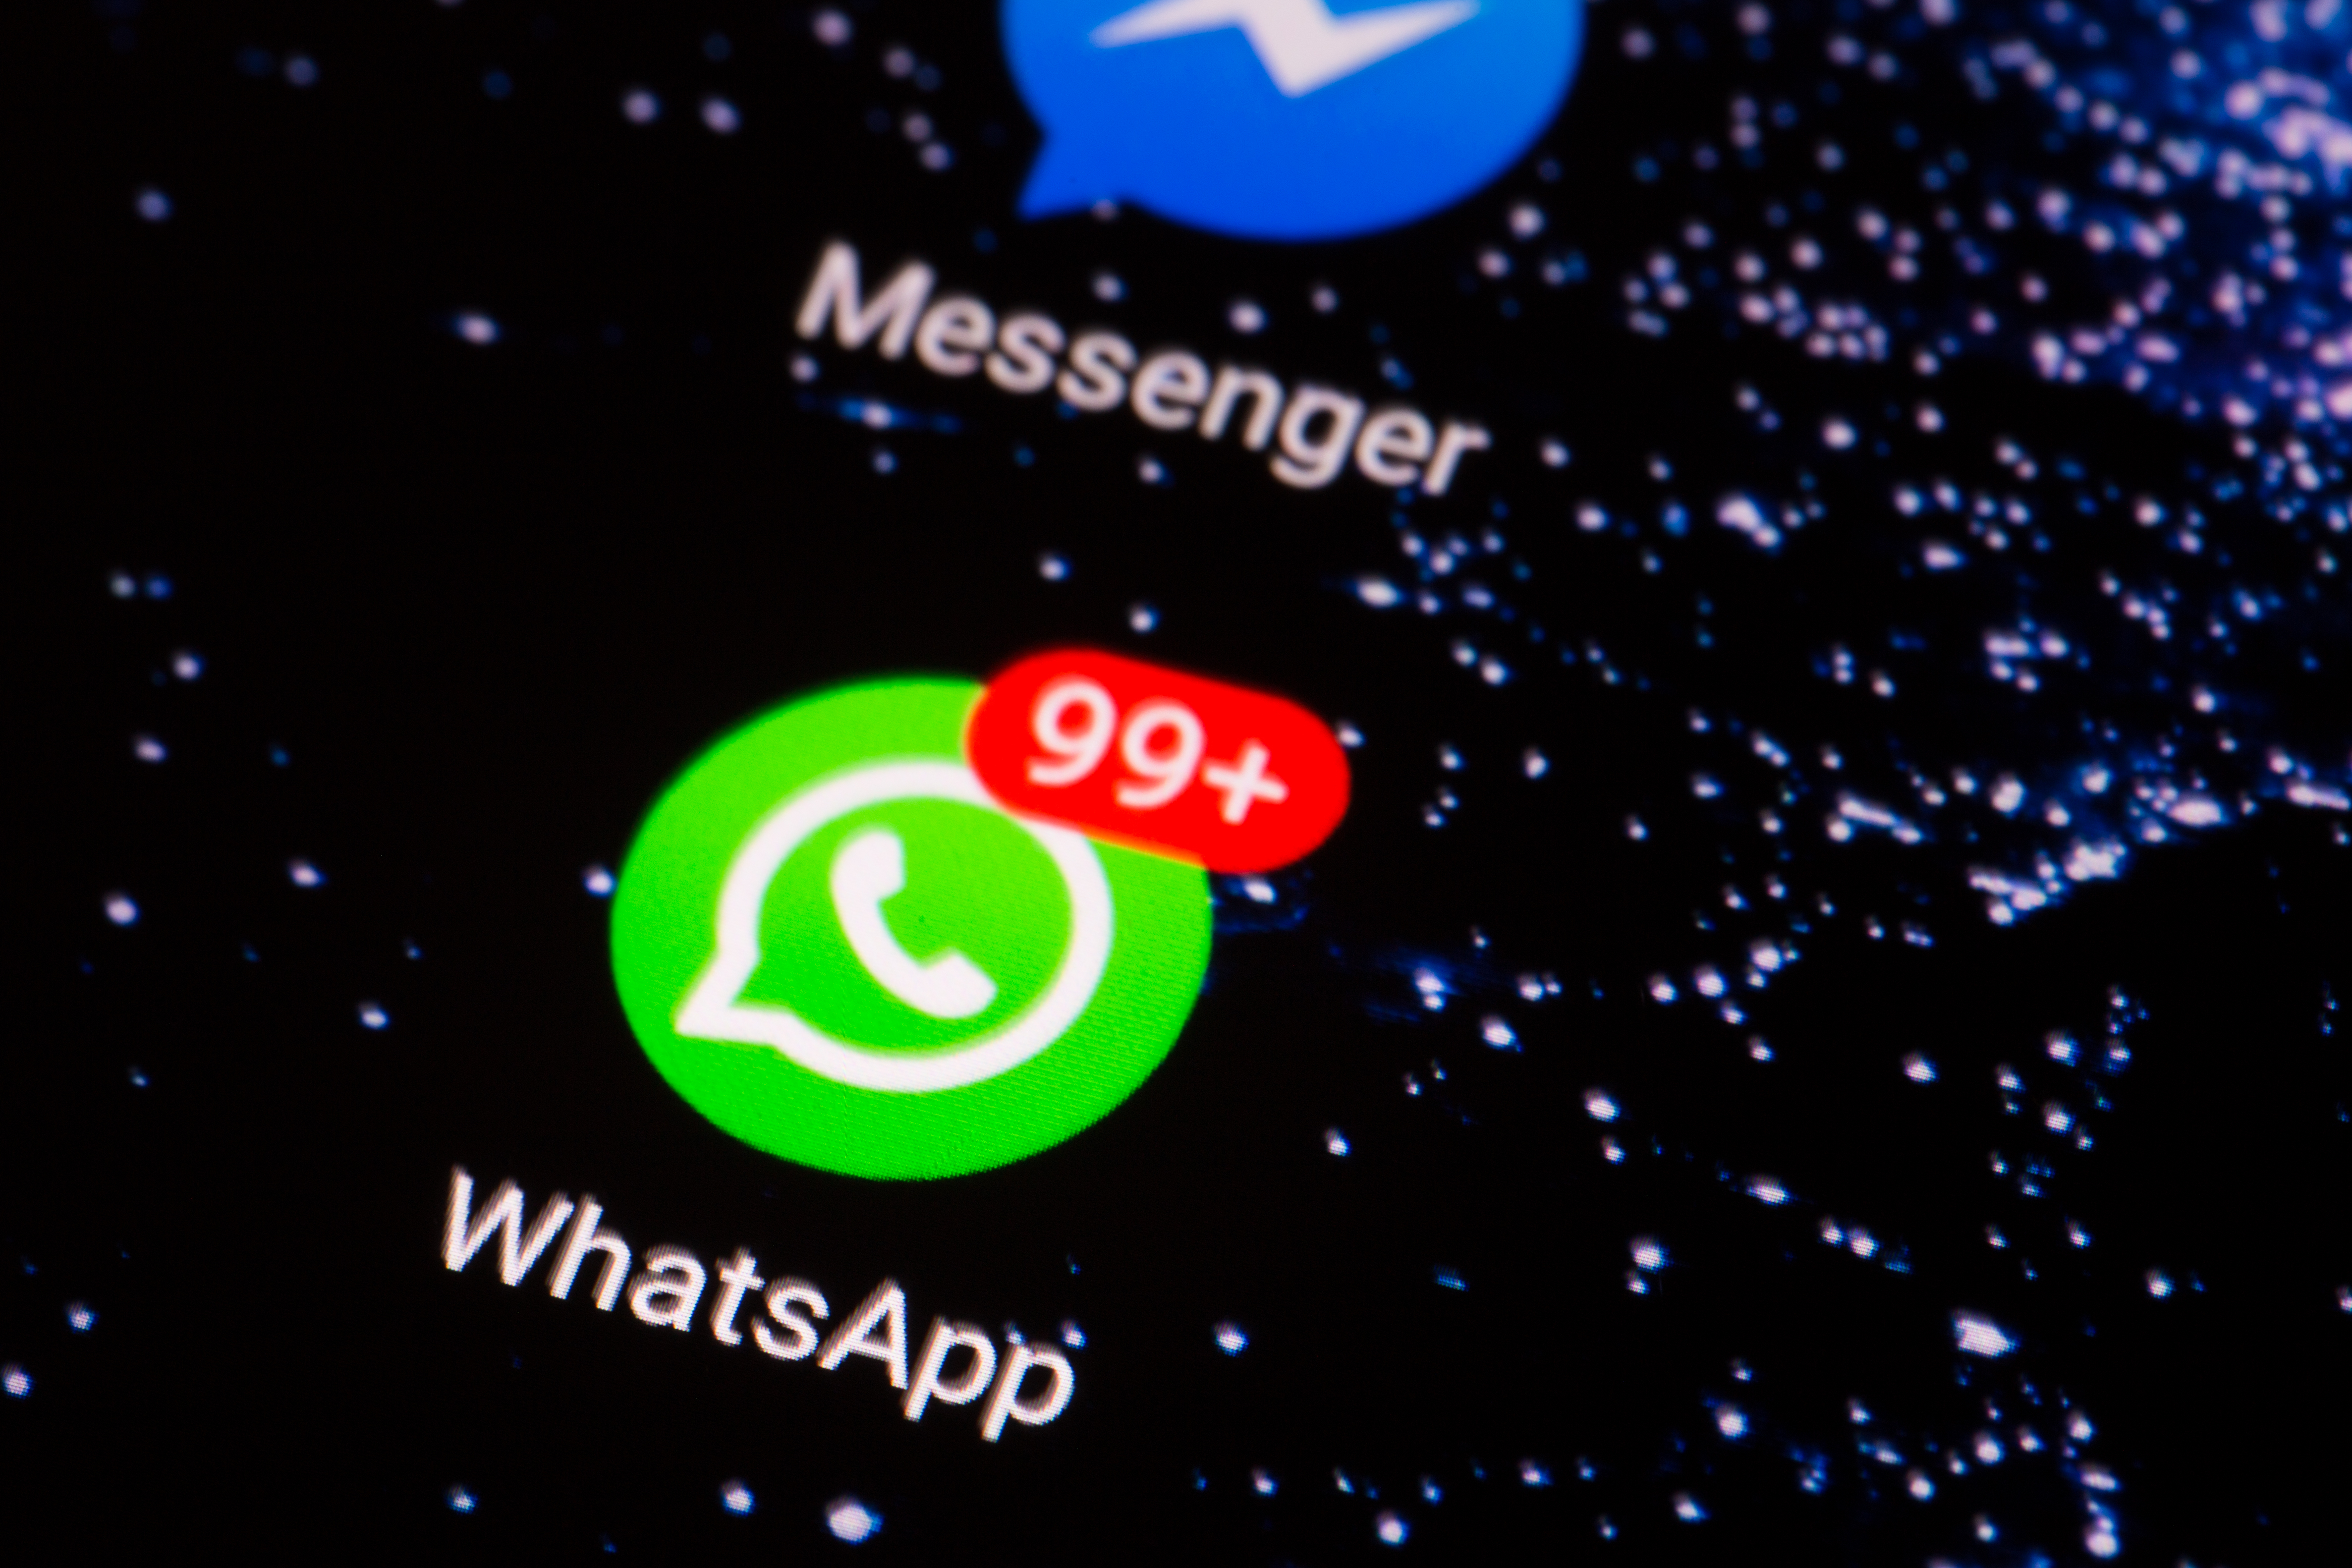 whatsapp-could-boost-your-business